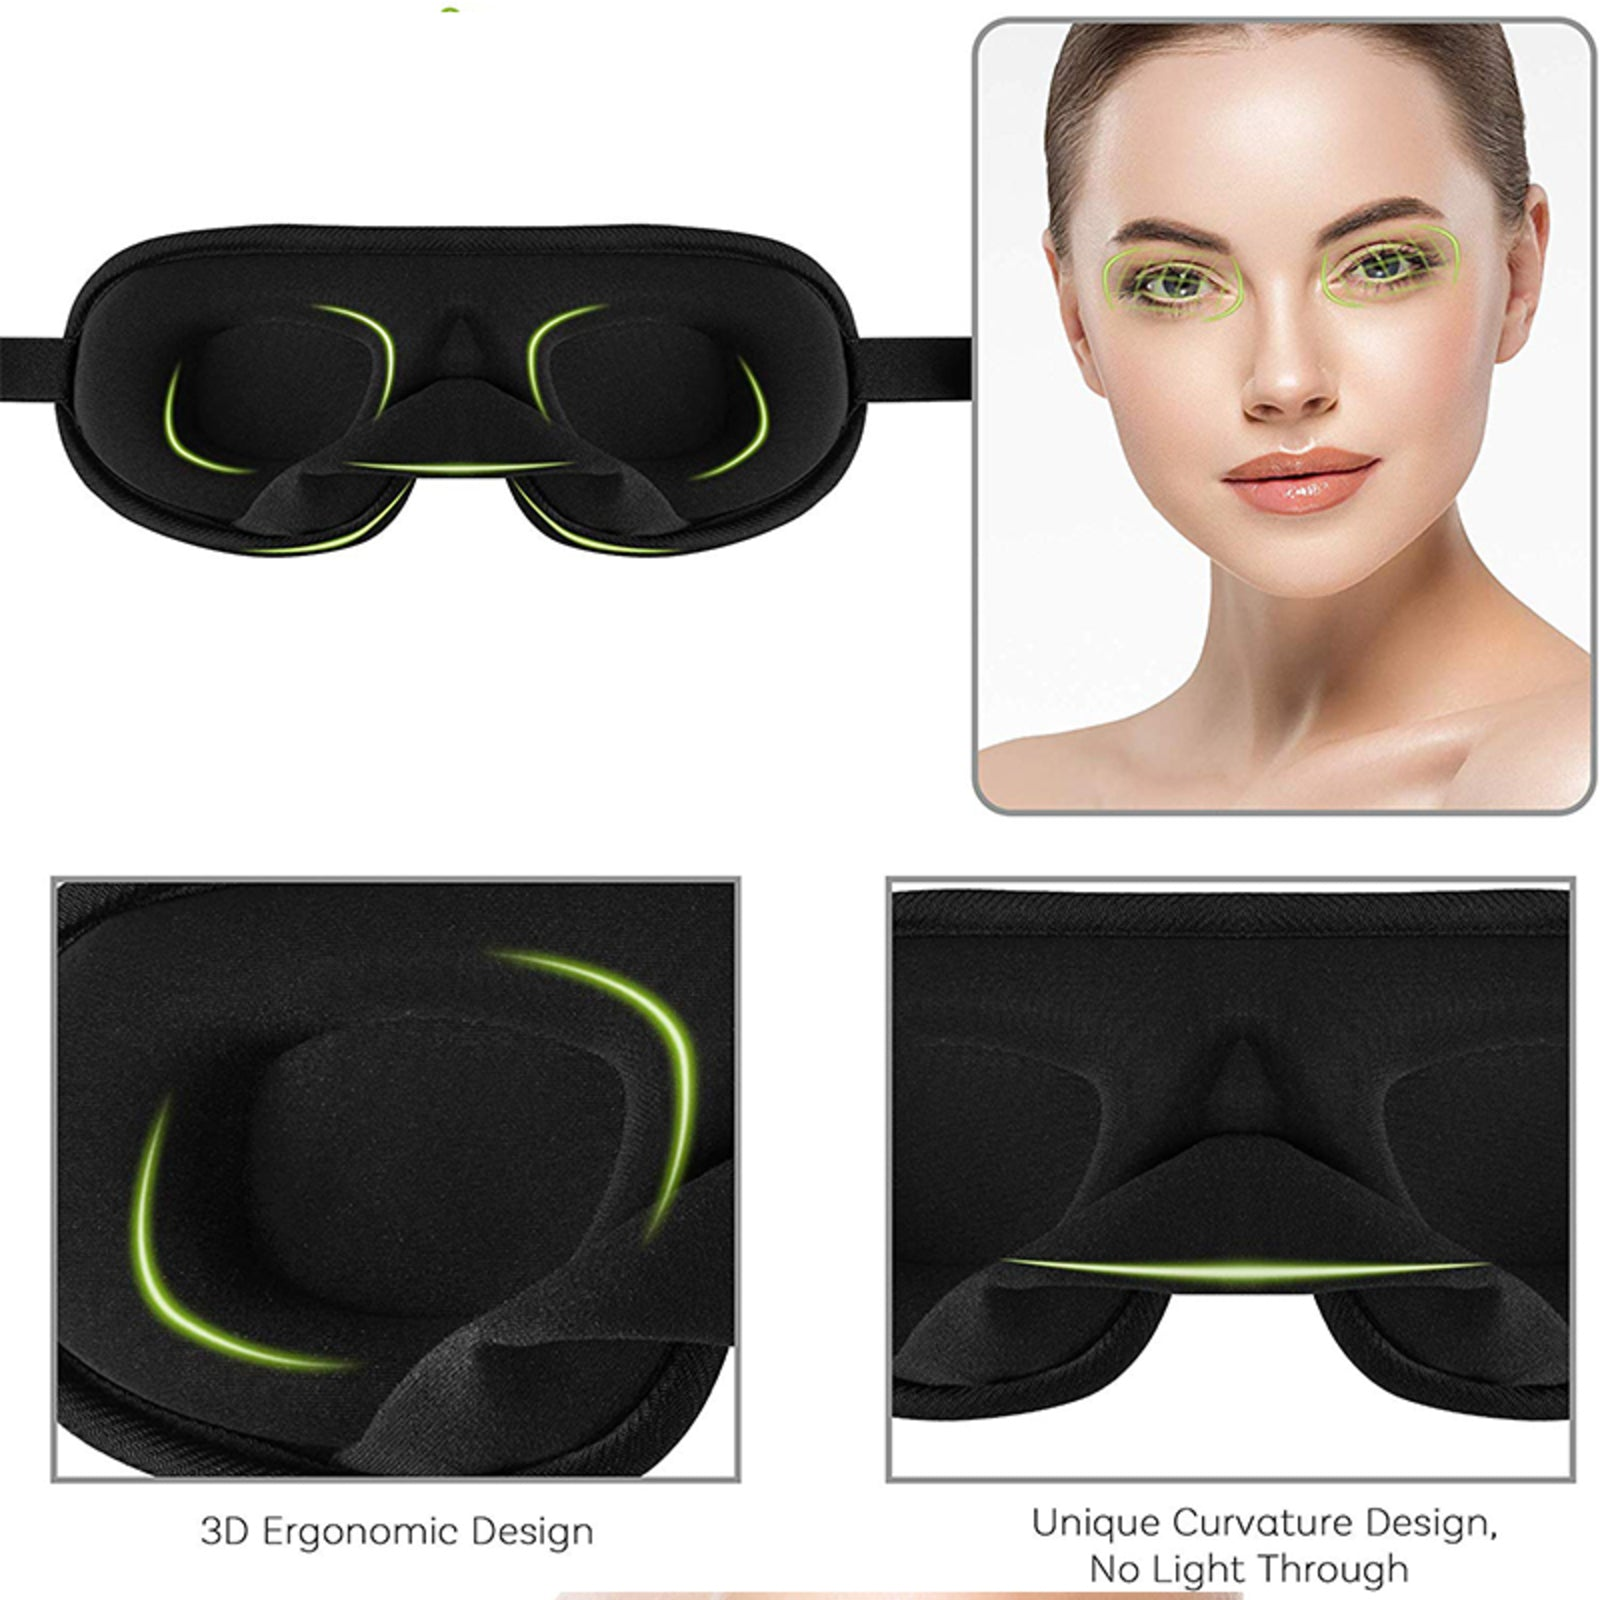 D&A HEALTH - 3D SLEEP EYE MASK WITH BREATHABLE MESH